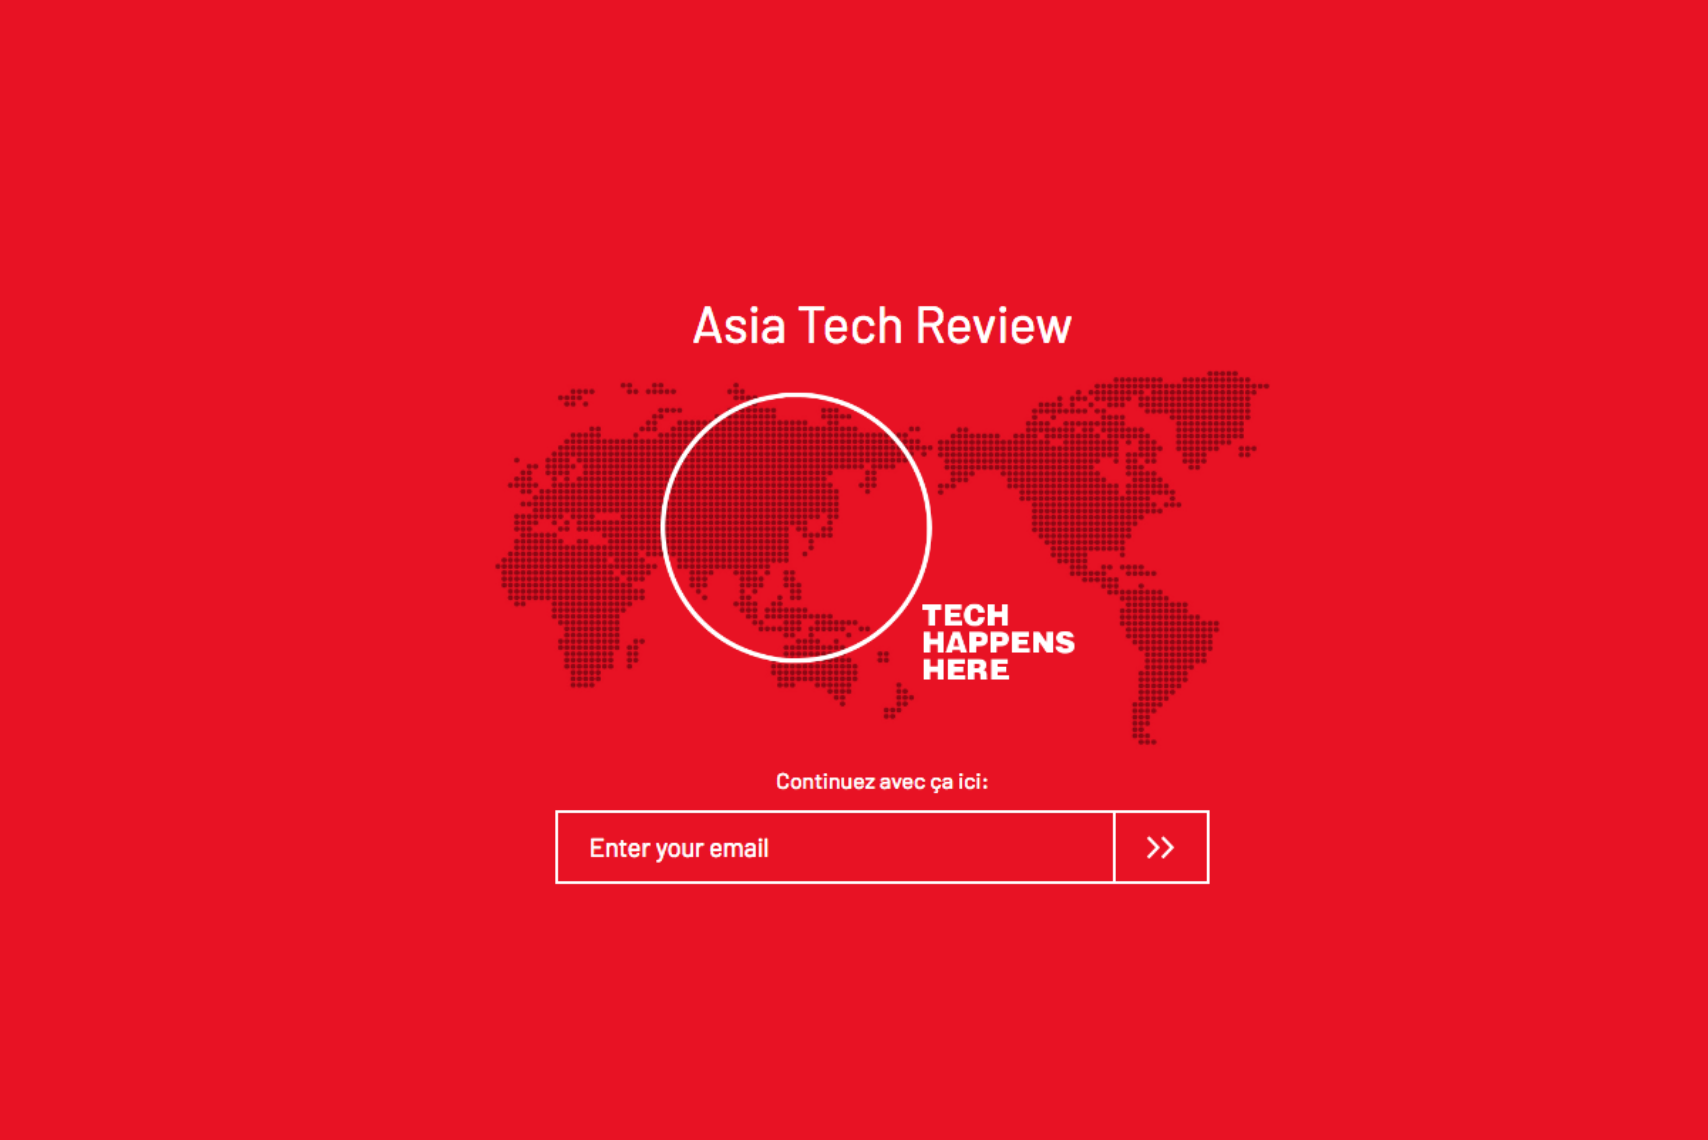 AsiaTechReview